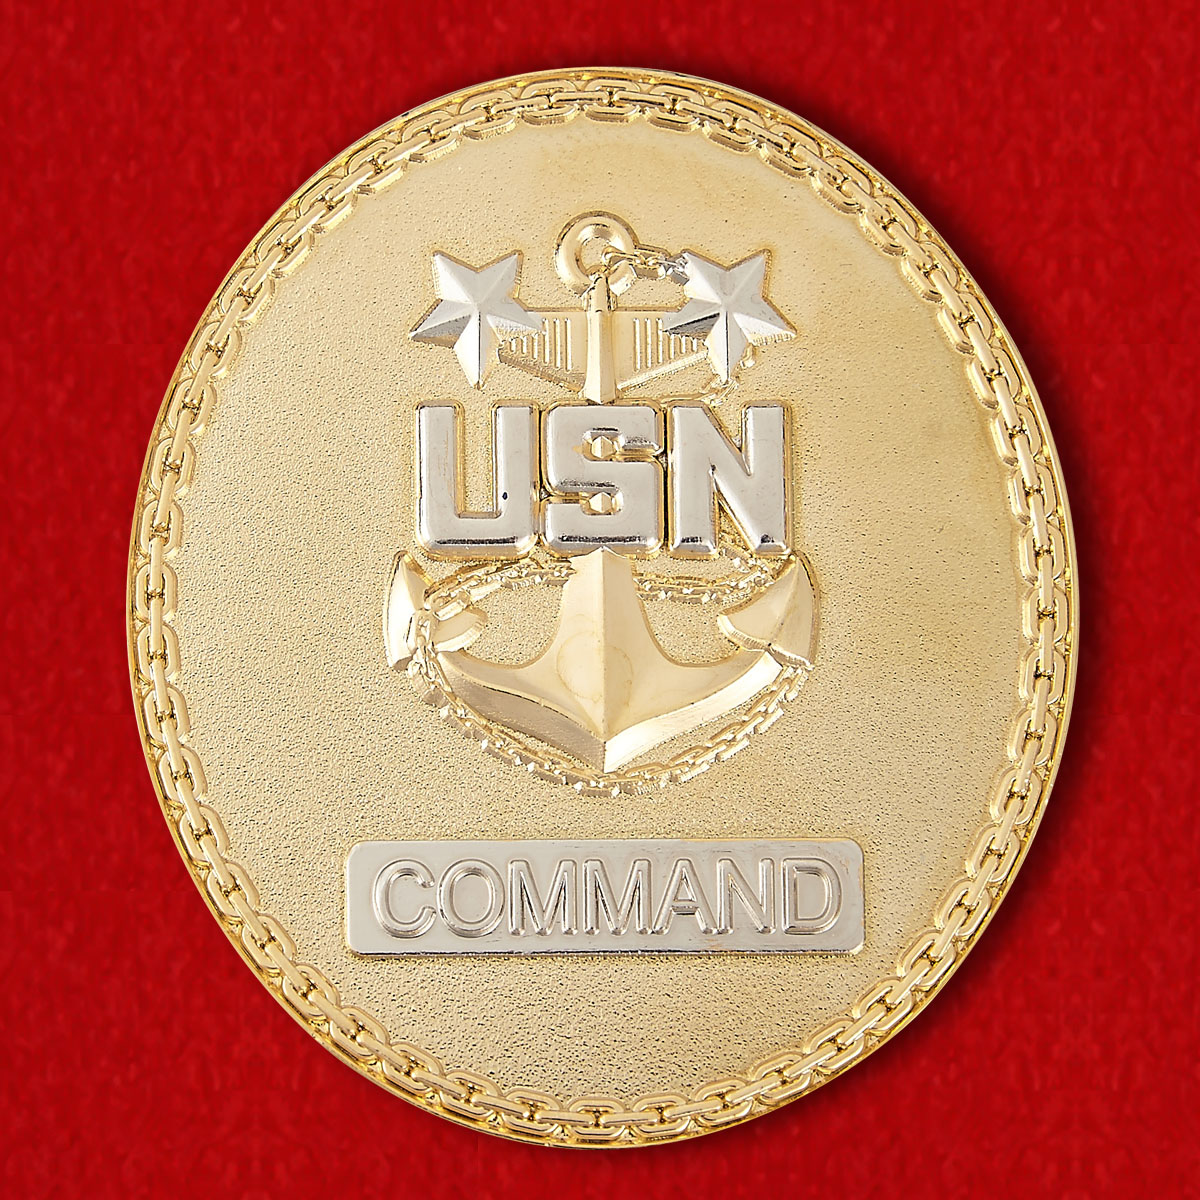 Presented For Excellence CMDCM (SWIAW) Gari Mendus USS Essex (LHD-2) Challenge Сoin